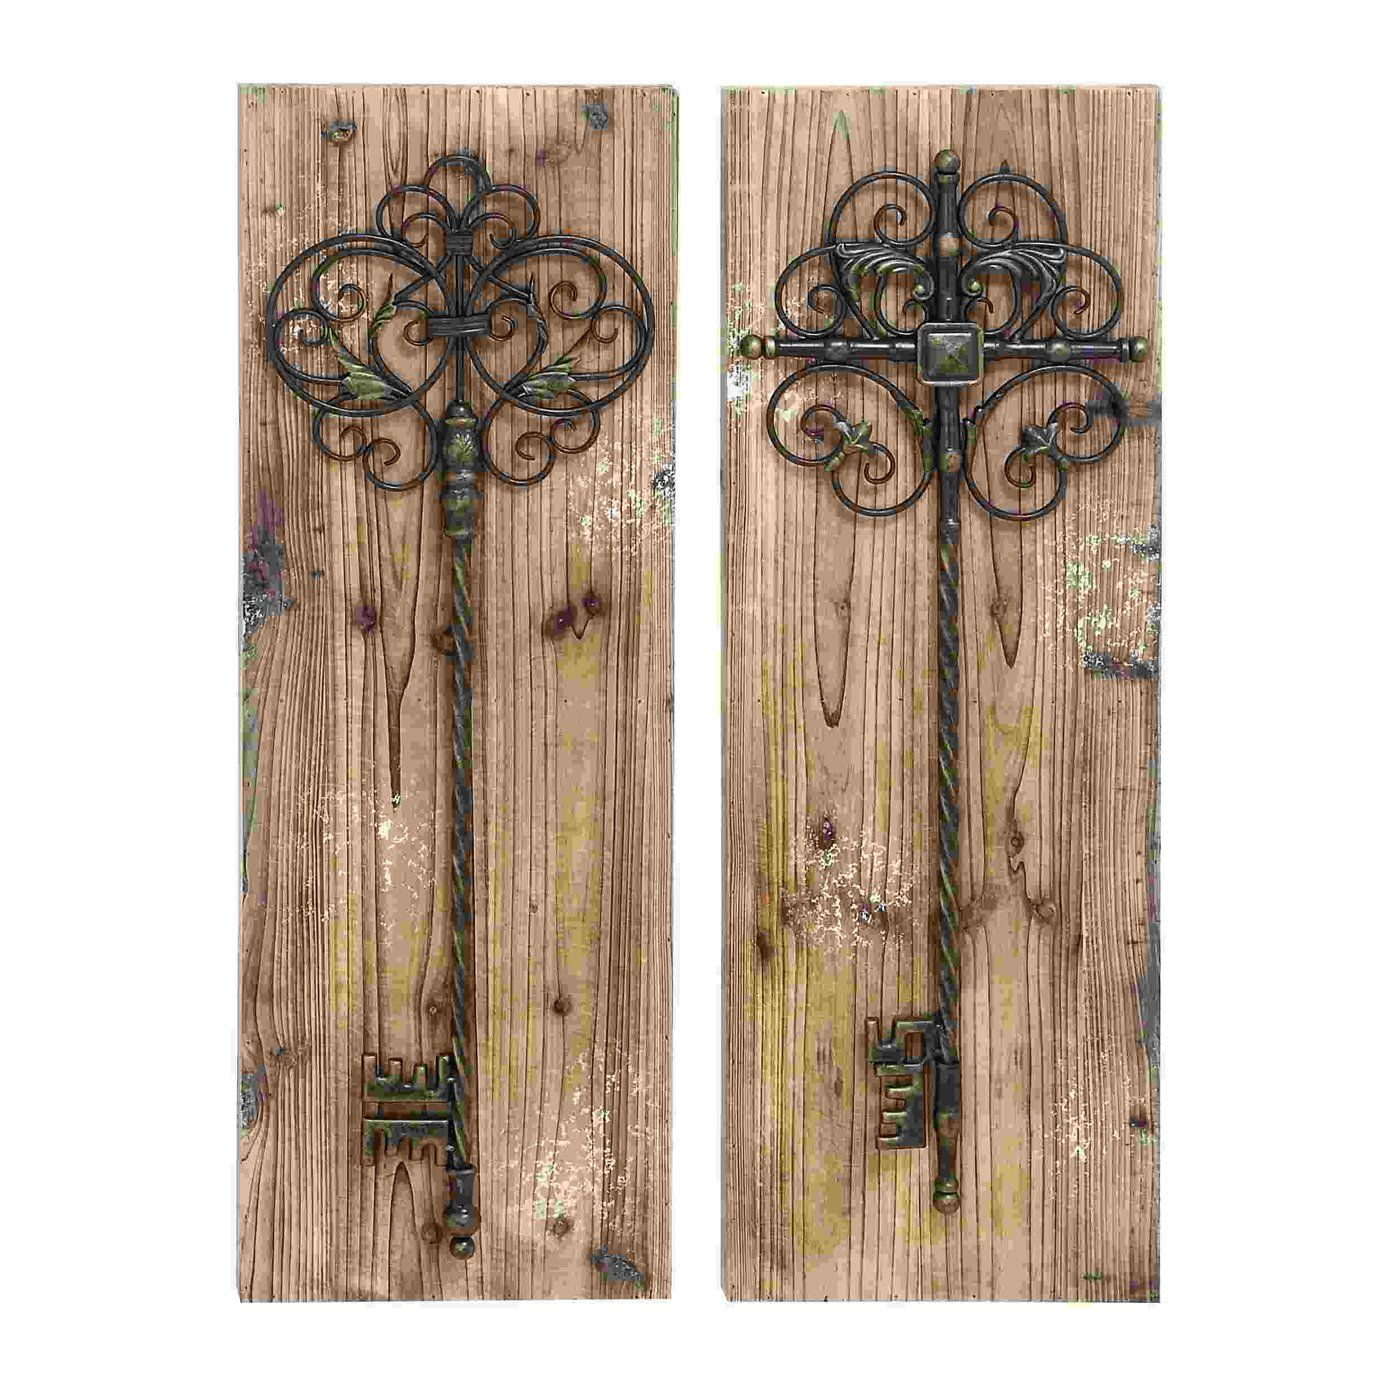 Woodland Imports Attractive Wood Panel Wall D�cor: Woodland Imports 55423 Enchanting Key Door Wall Panels